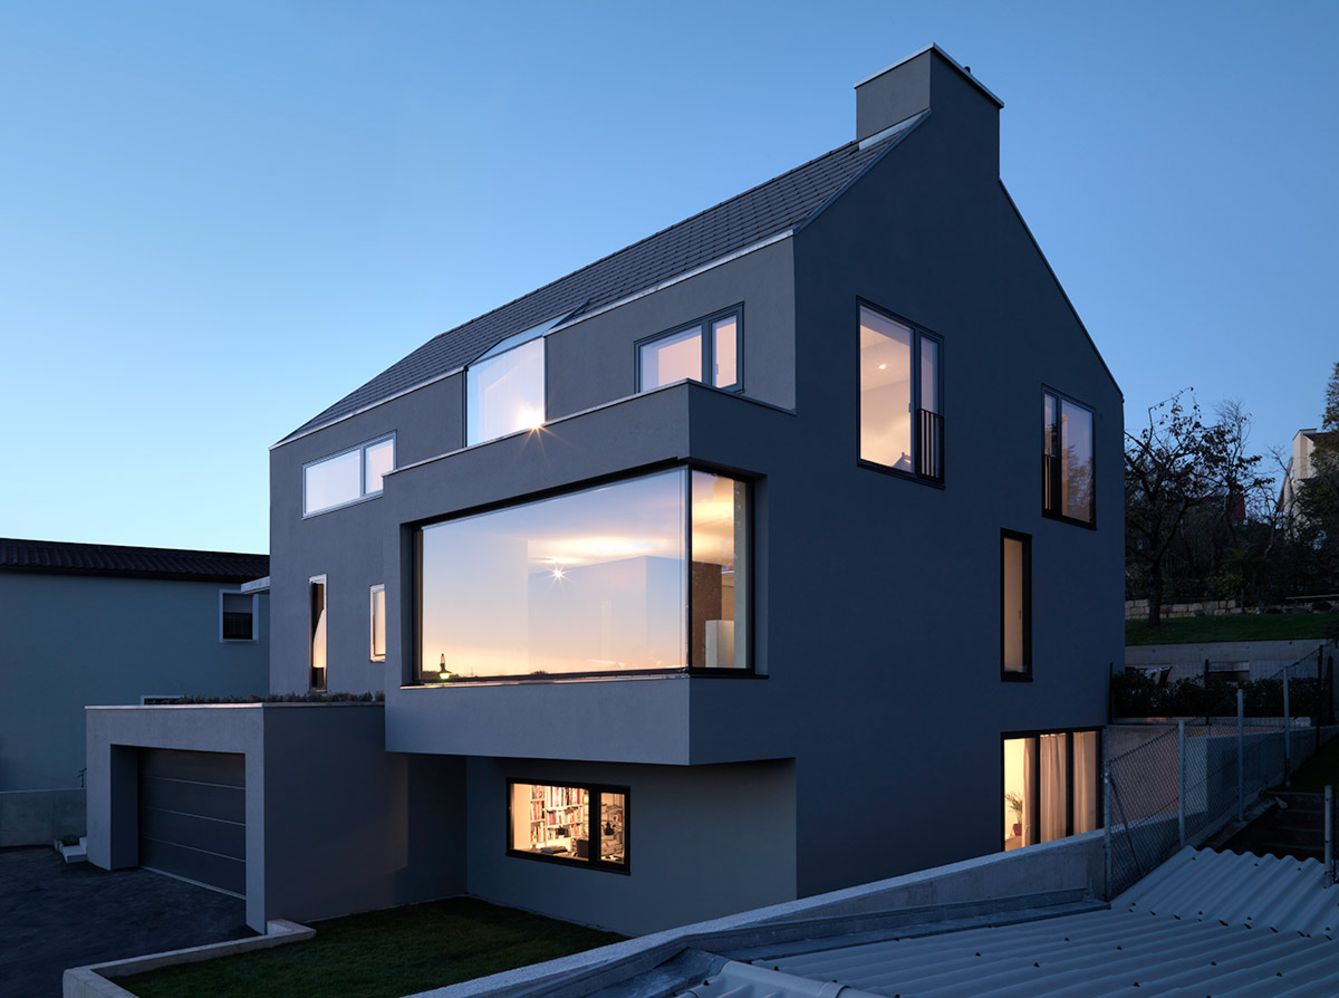 https://elonahome.com/wp-content/uploads/2020/12/Neoteric-facade-design-of-House-F-presenting-jutted-out-windows-and-garrage-doors-2.jpg